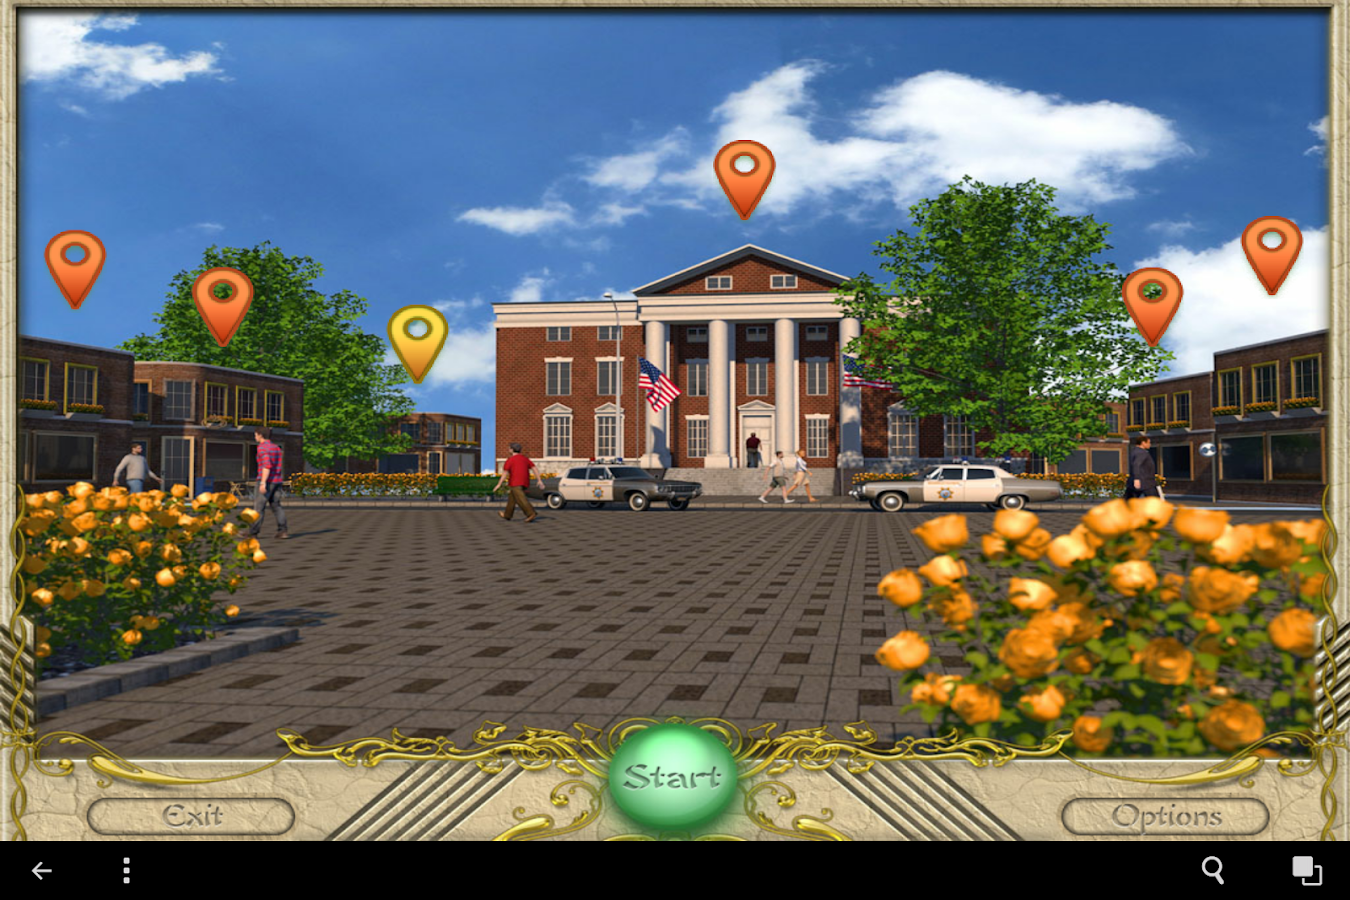 FlipPix Art - Town Square- screenshot